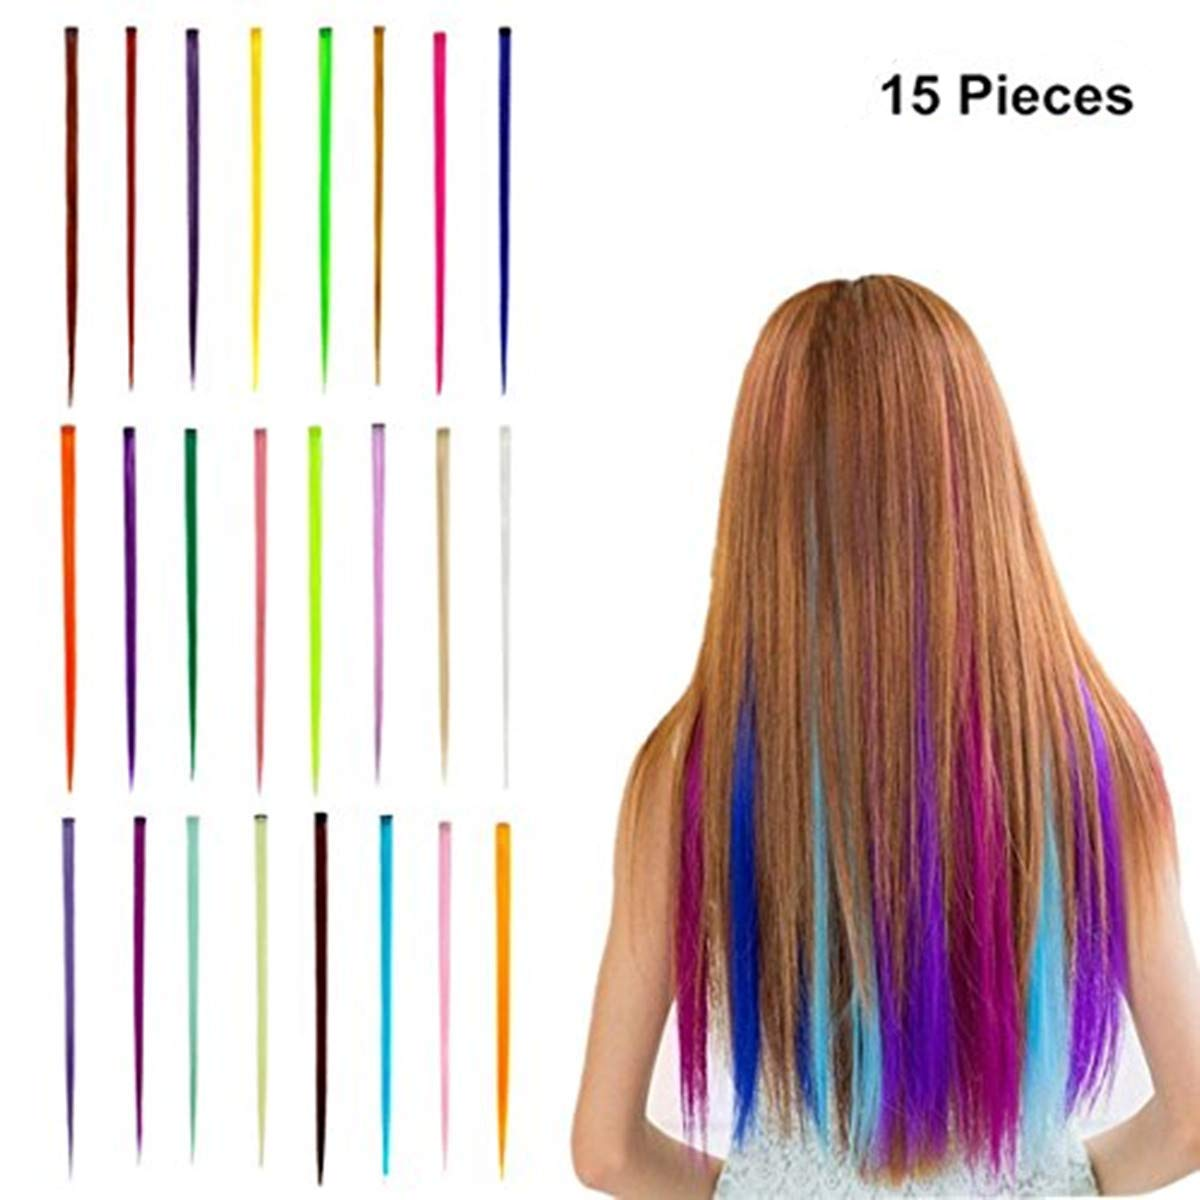 Hair Extensions 55cm (21) Multi-Colors Highlight Hair Extensions Fashion Hairpieces (10 pieces) ShareCool